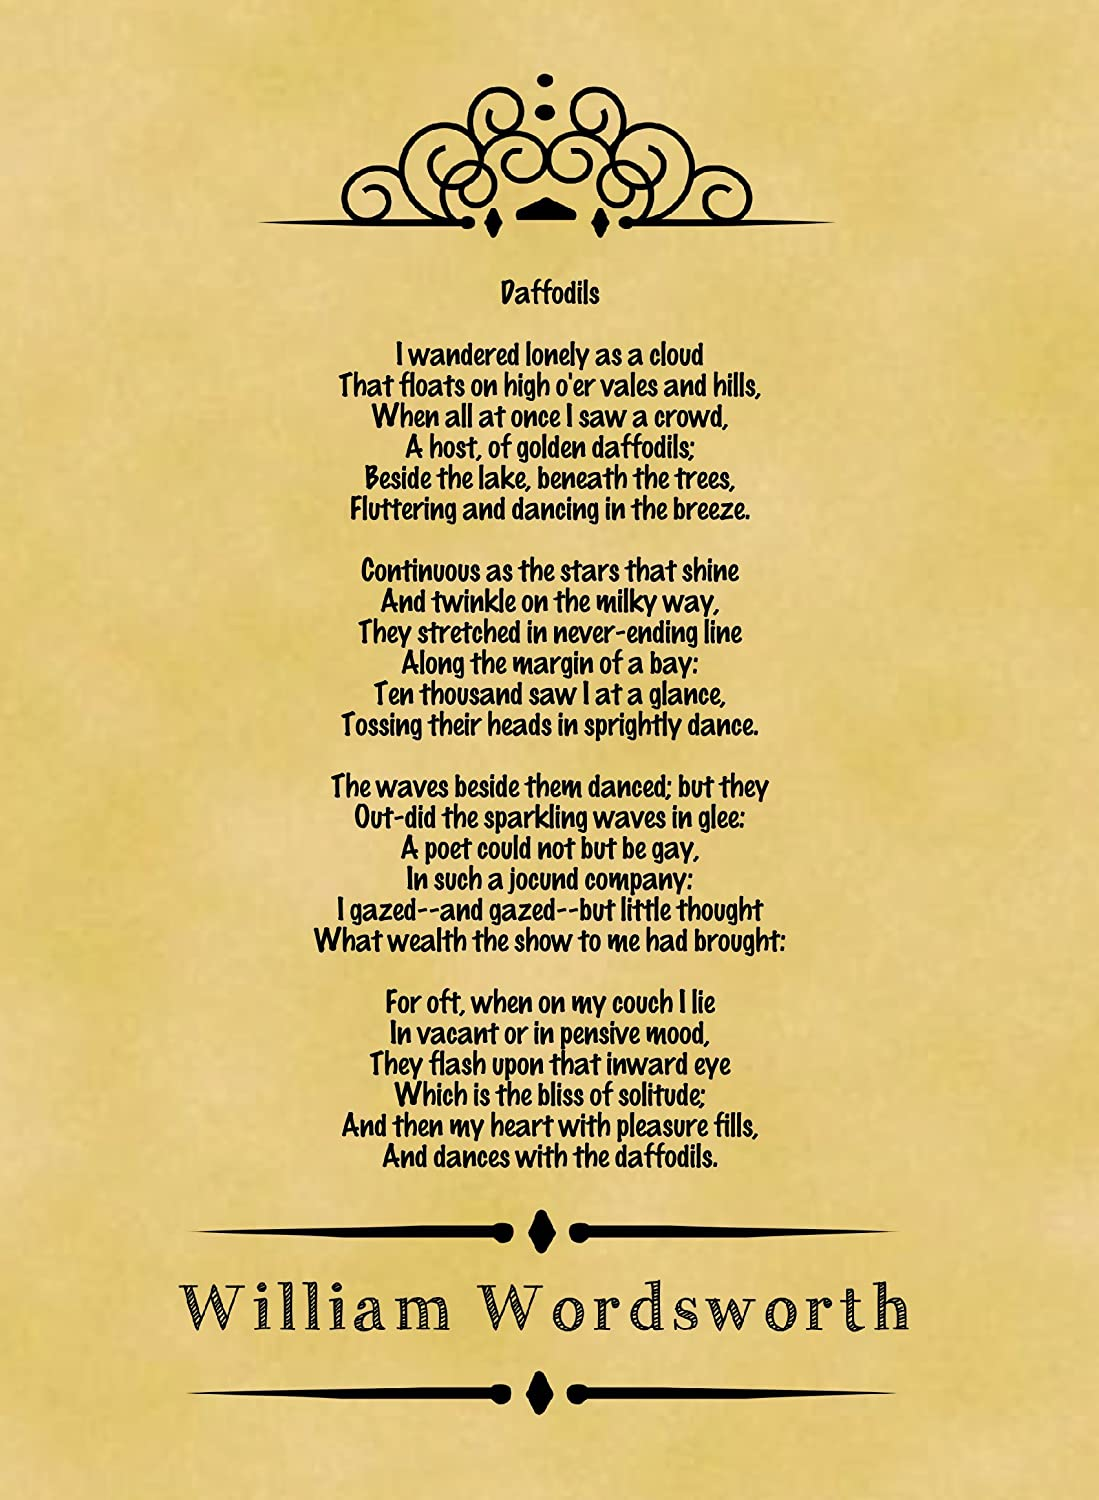 invictus william ernest henley Selectd works by poet william ernest henley  invictus out of the night that  covers me,: black as the pit from pole to pole, i thank whatever gods may be: for .